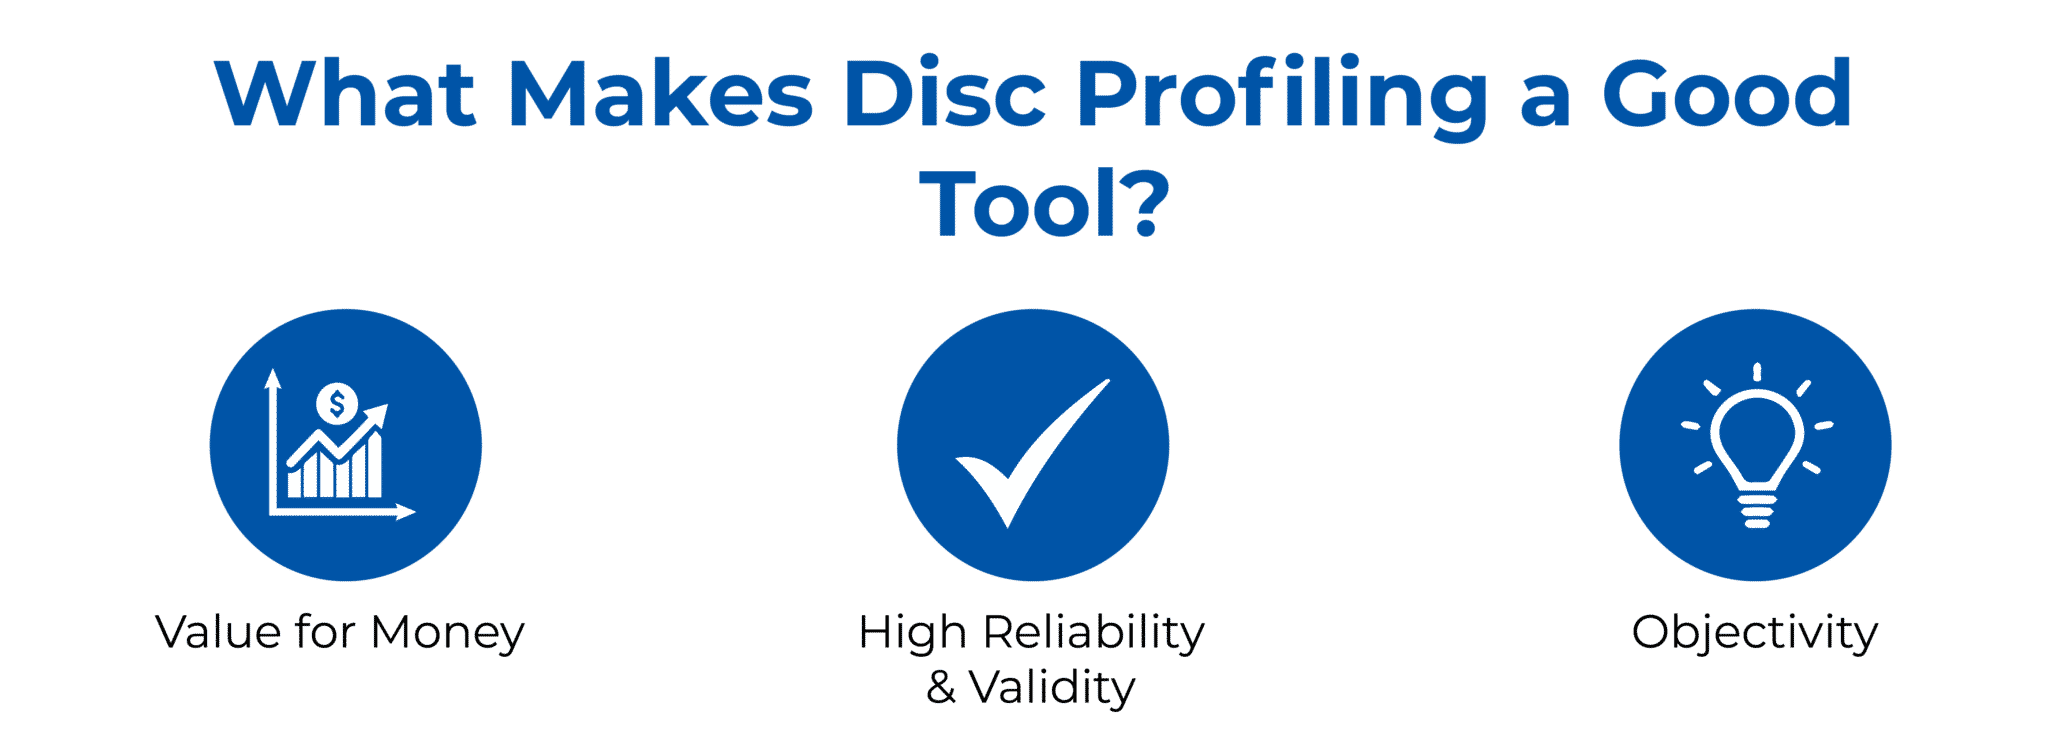 BENEFITS OF DiSC PROFILING AS A TOOL